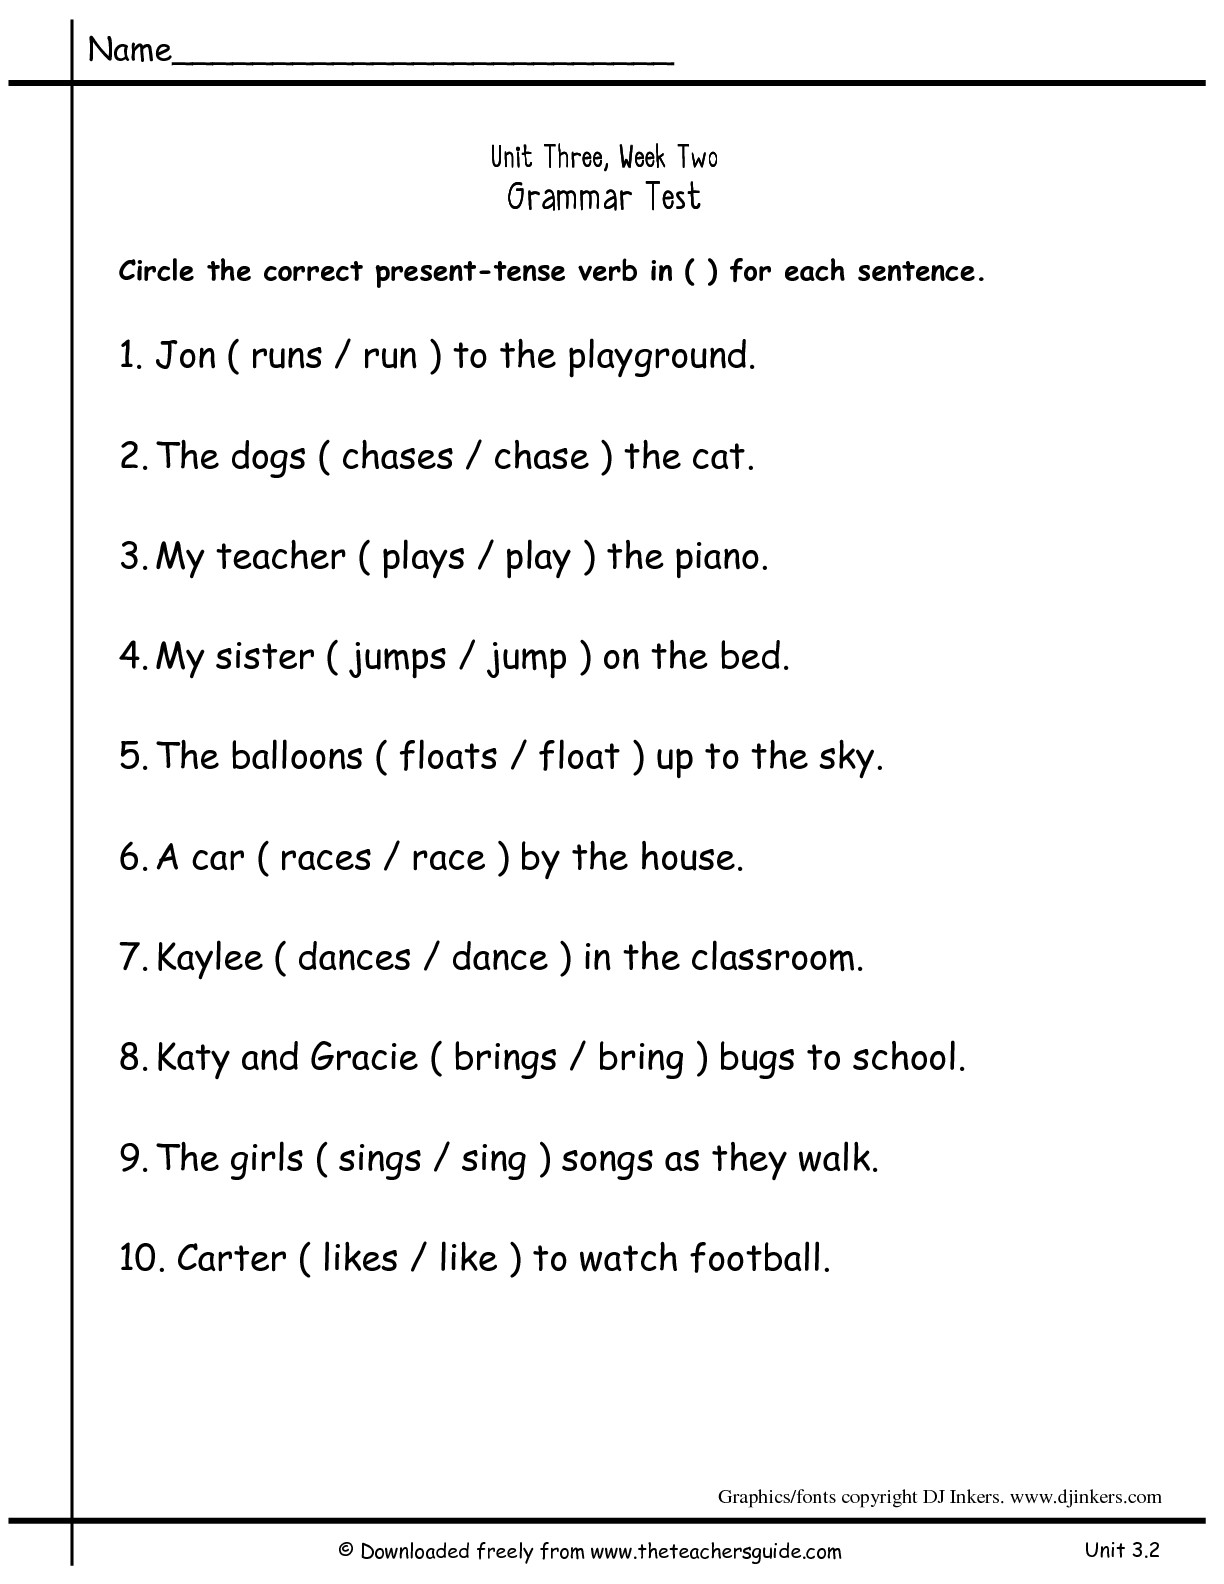 Online Grammar Test For Grade 5